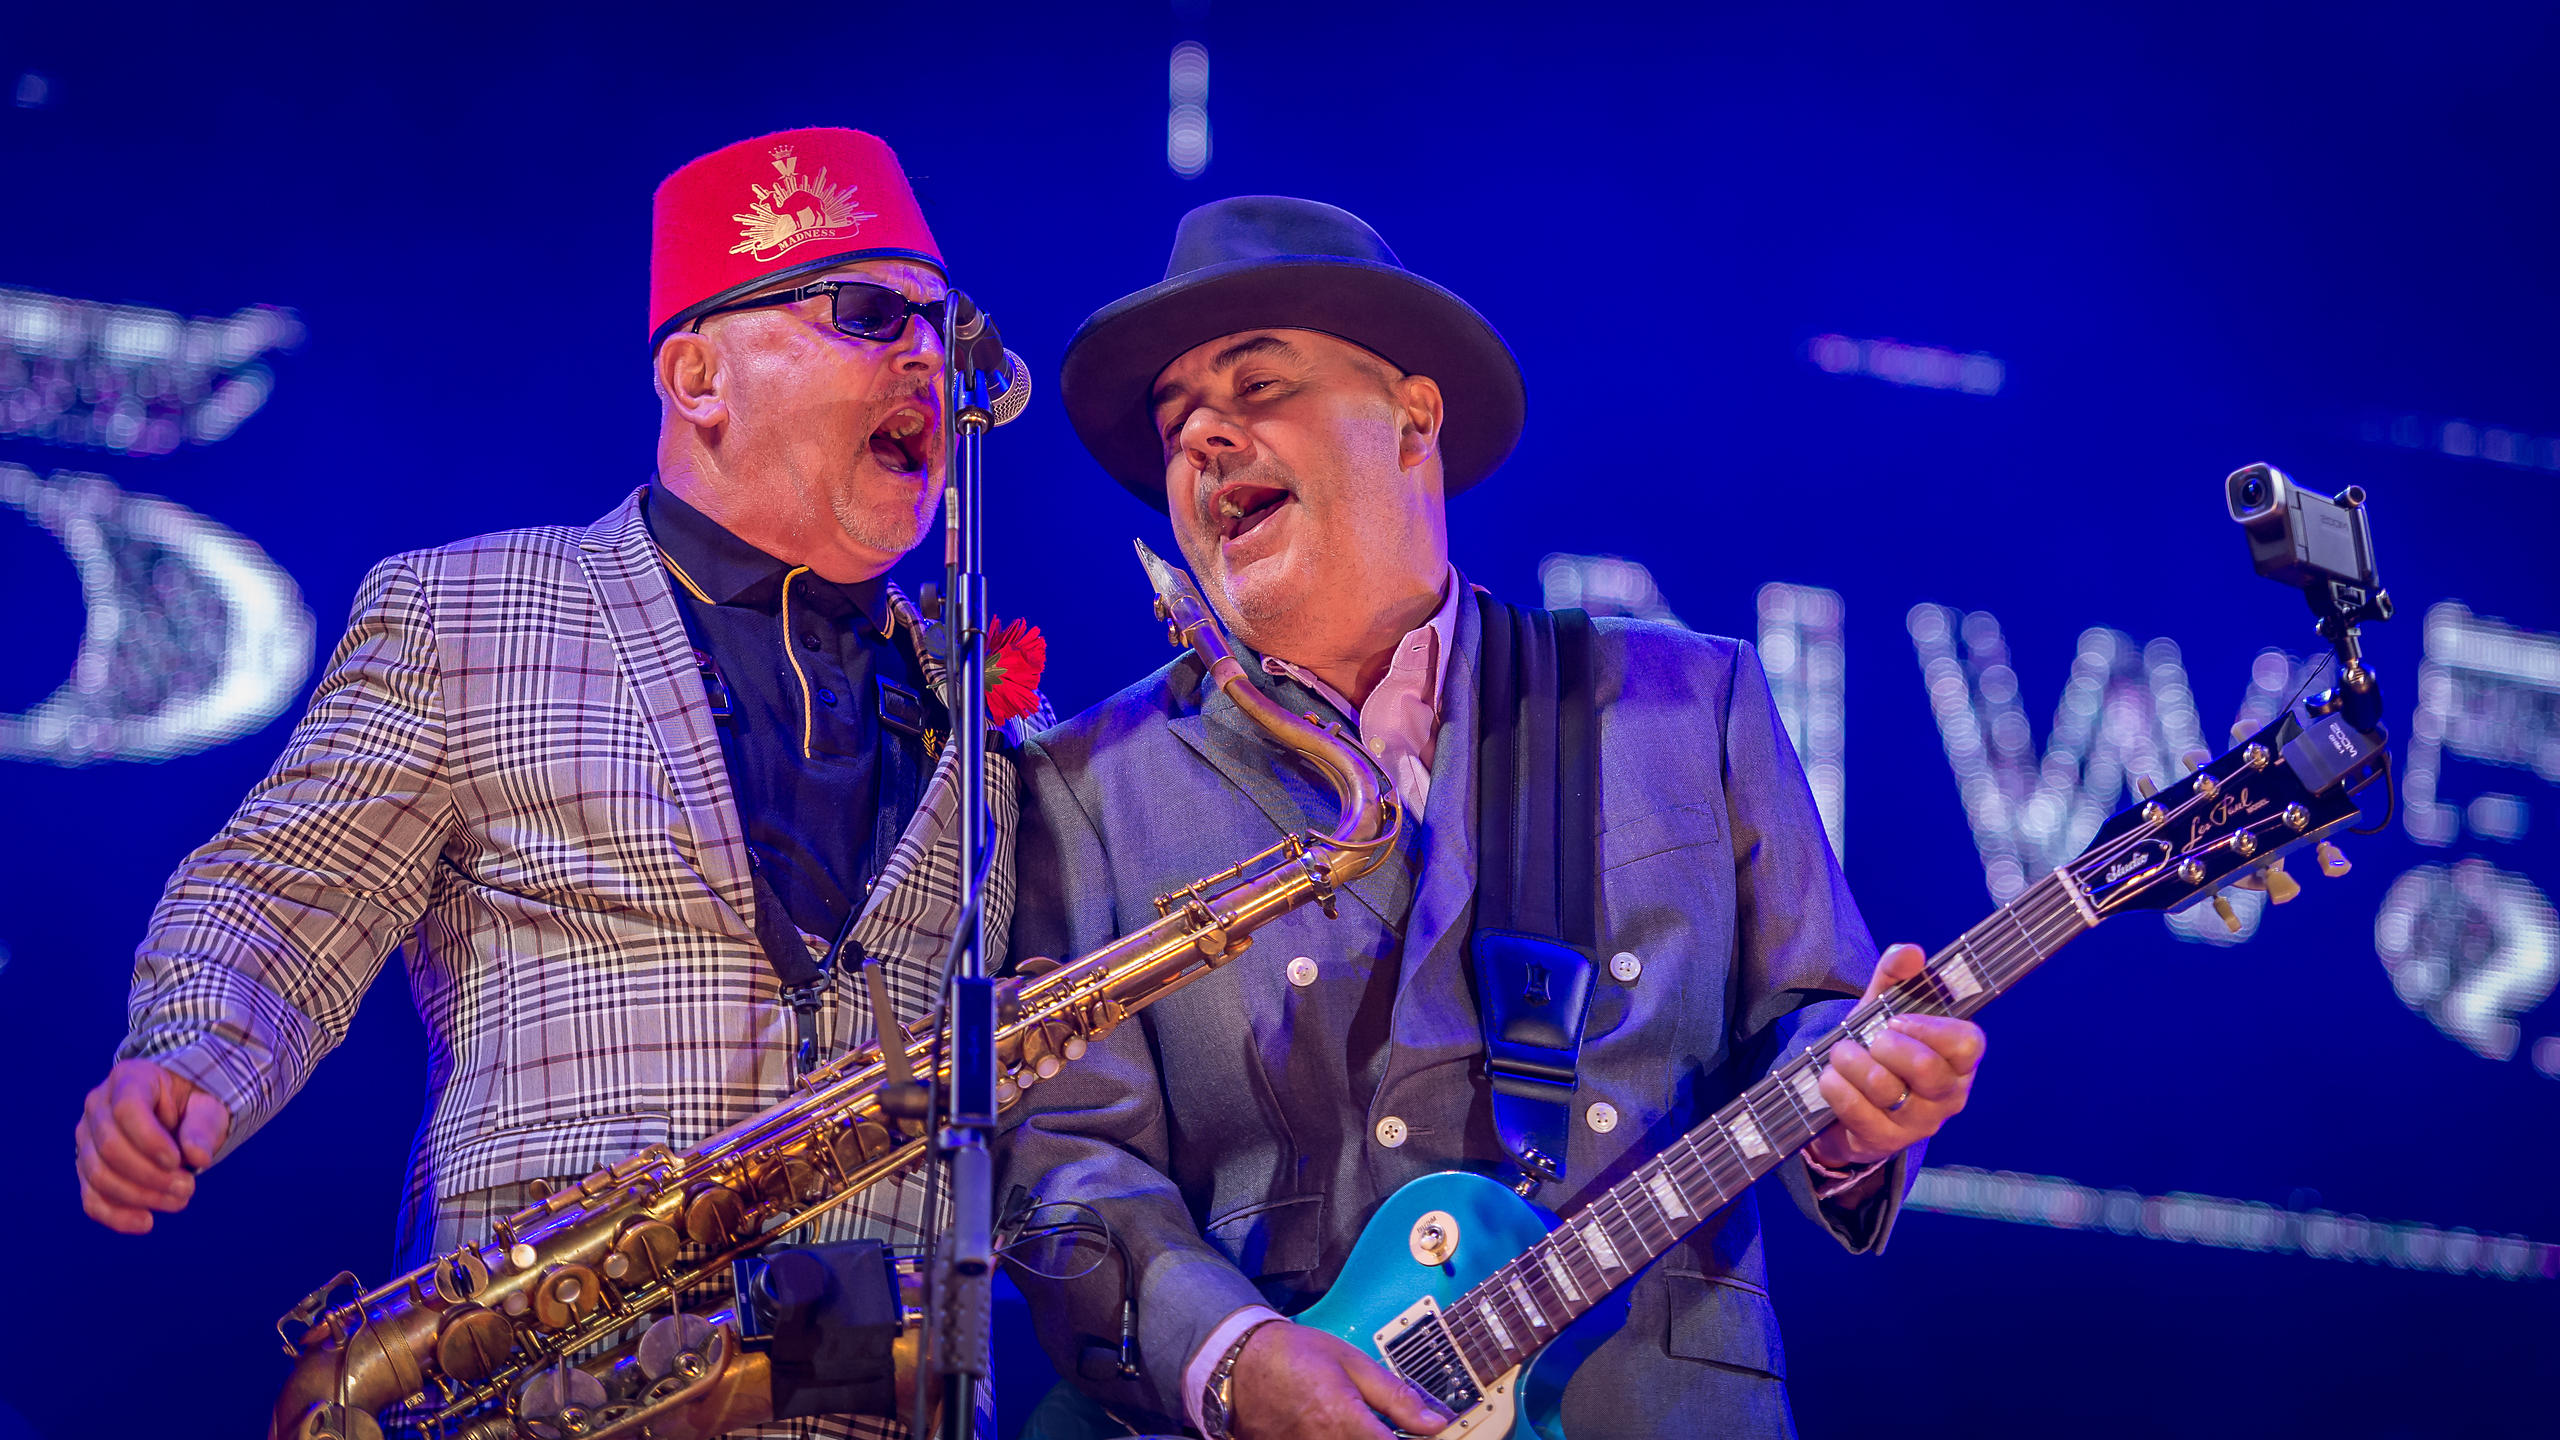 Madness Headlining Friday Night on the Castle Stage at Victorious Festival 2017